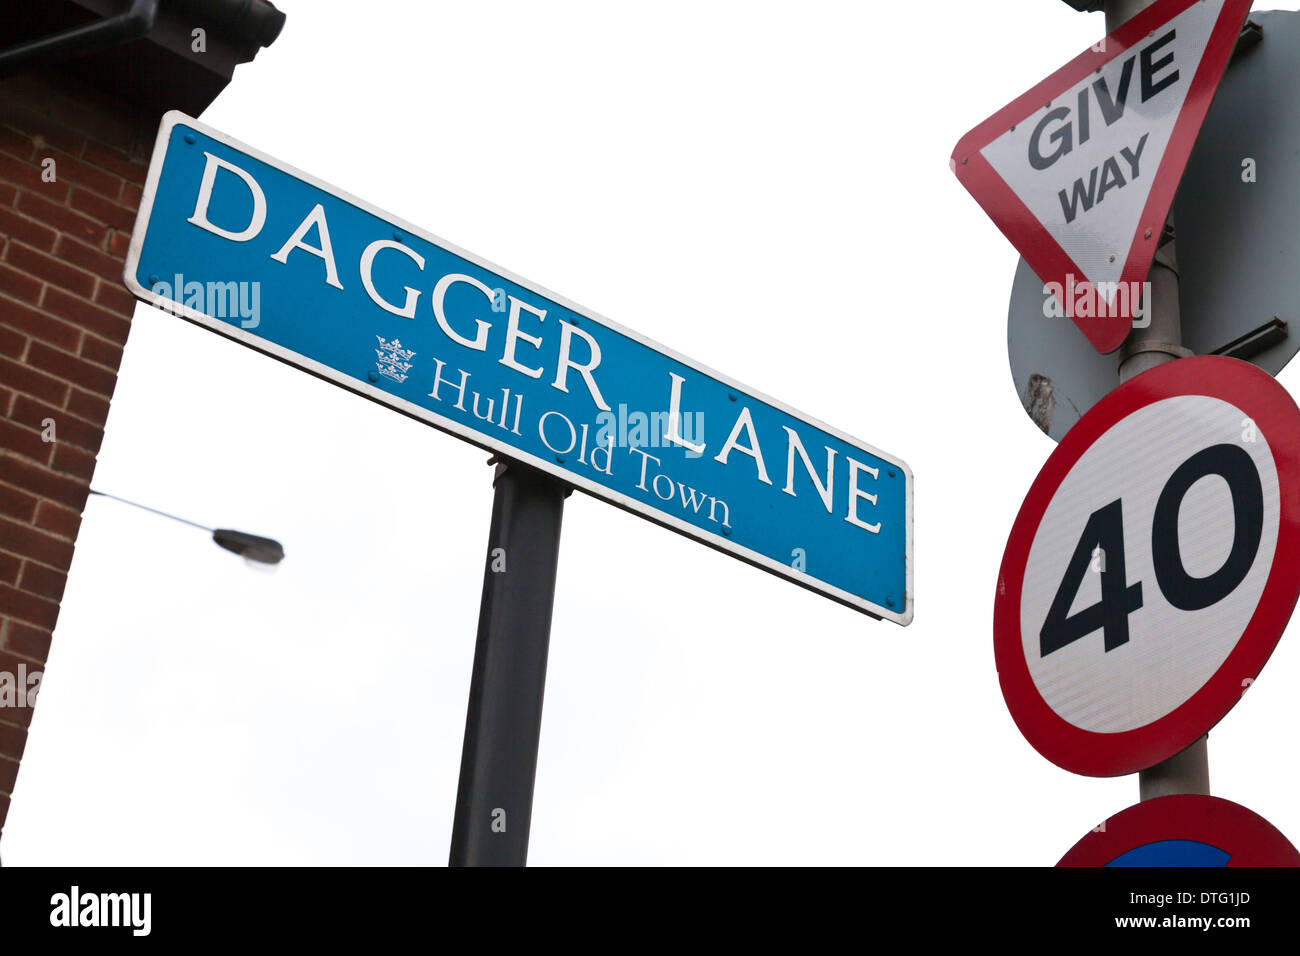 Dagger Lane road sign Kingston Upon hull East Riding city centre, East Yorkshire, England, UK GB signs photos pictures Stock Photo